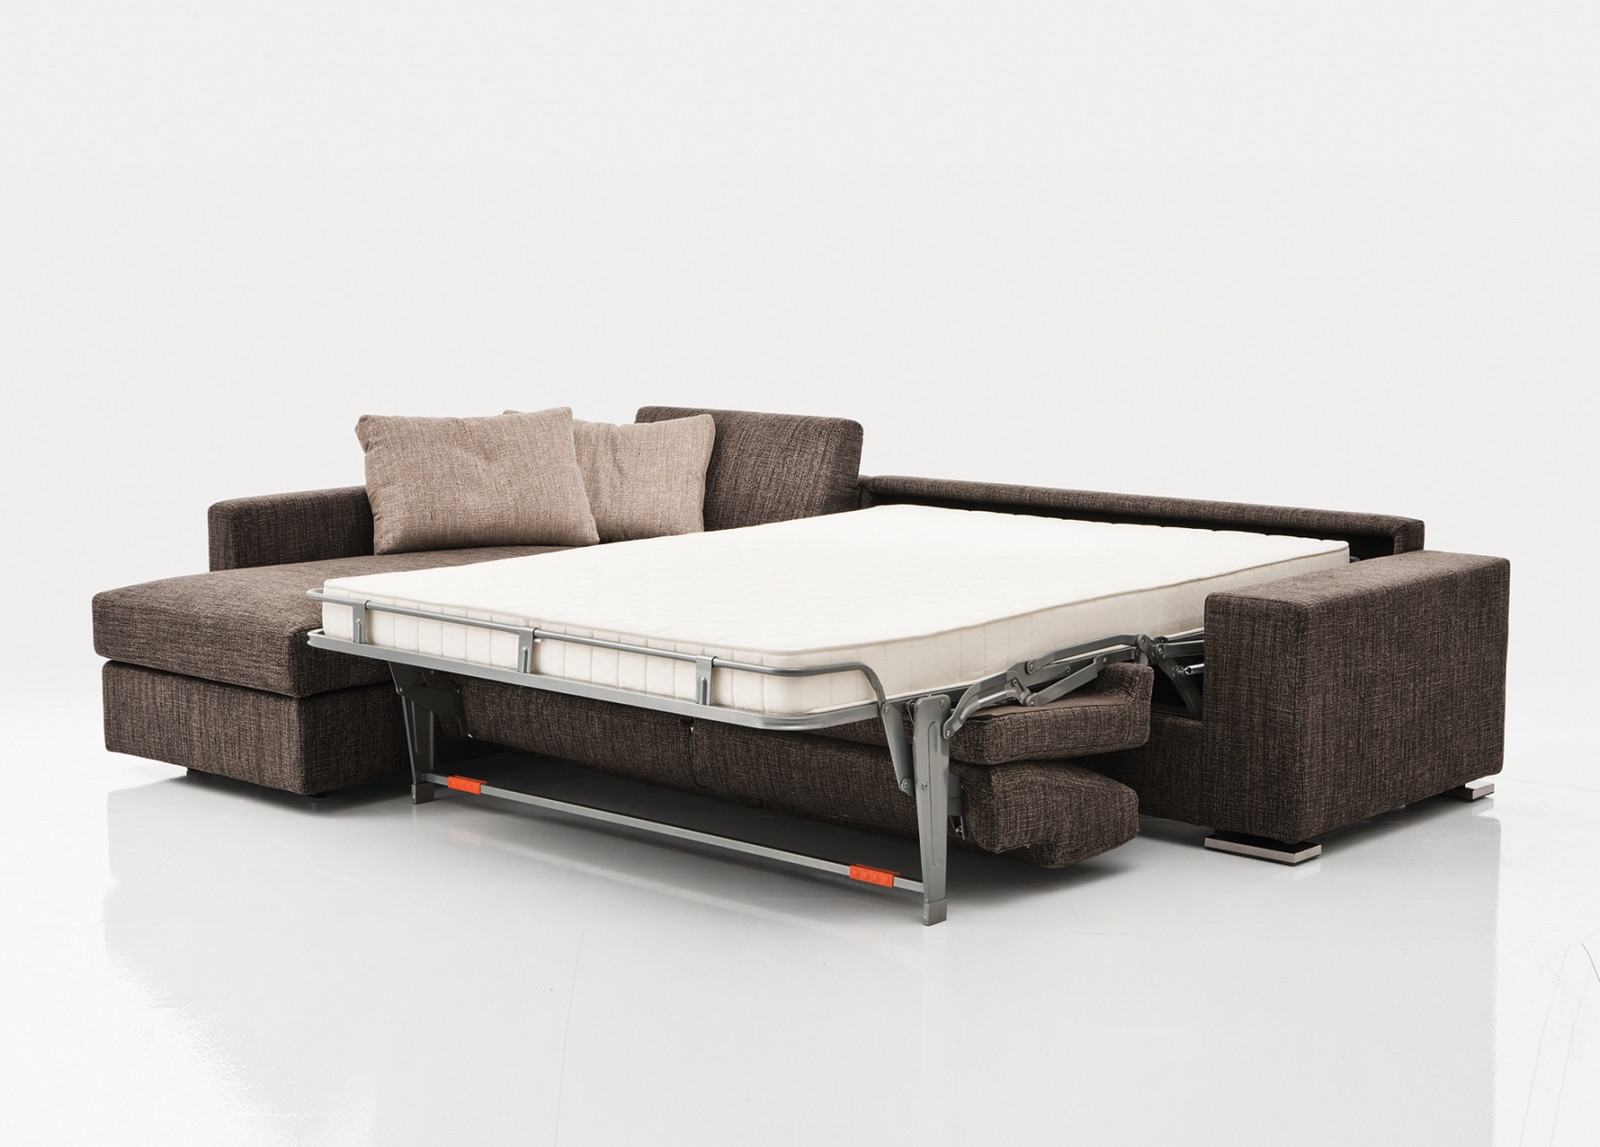 Couch Bett Wo Ow Ventura Sofas Beds